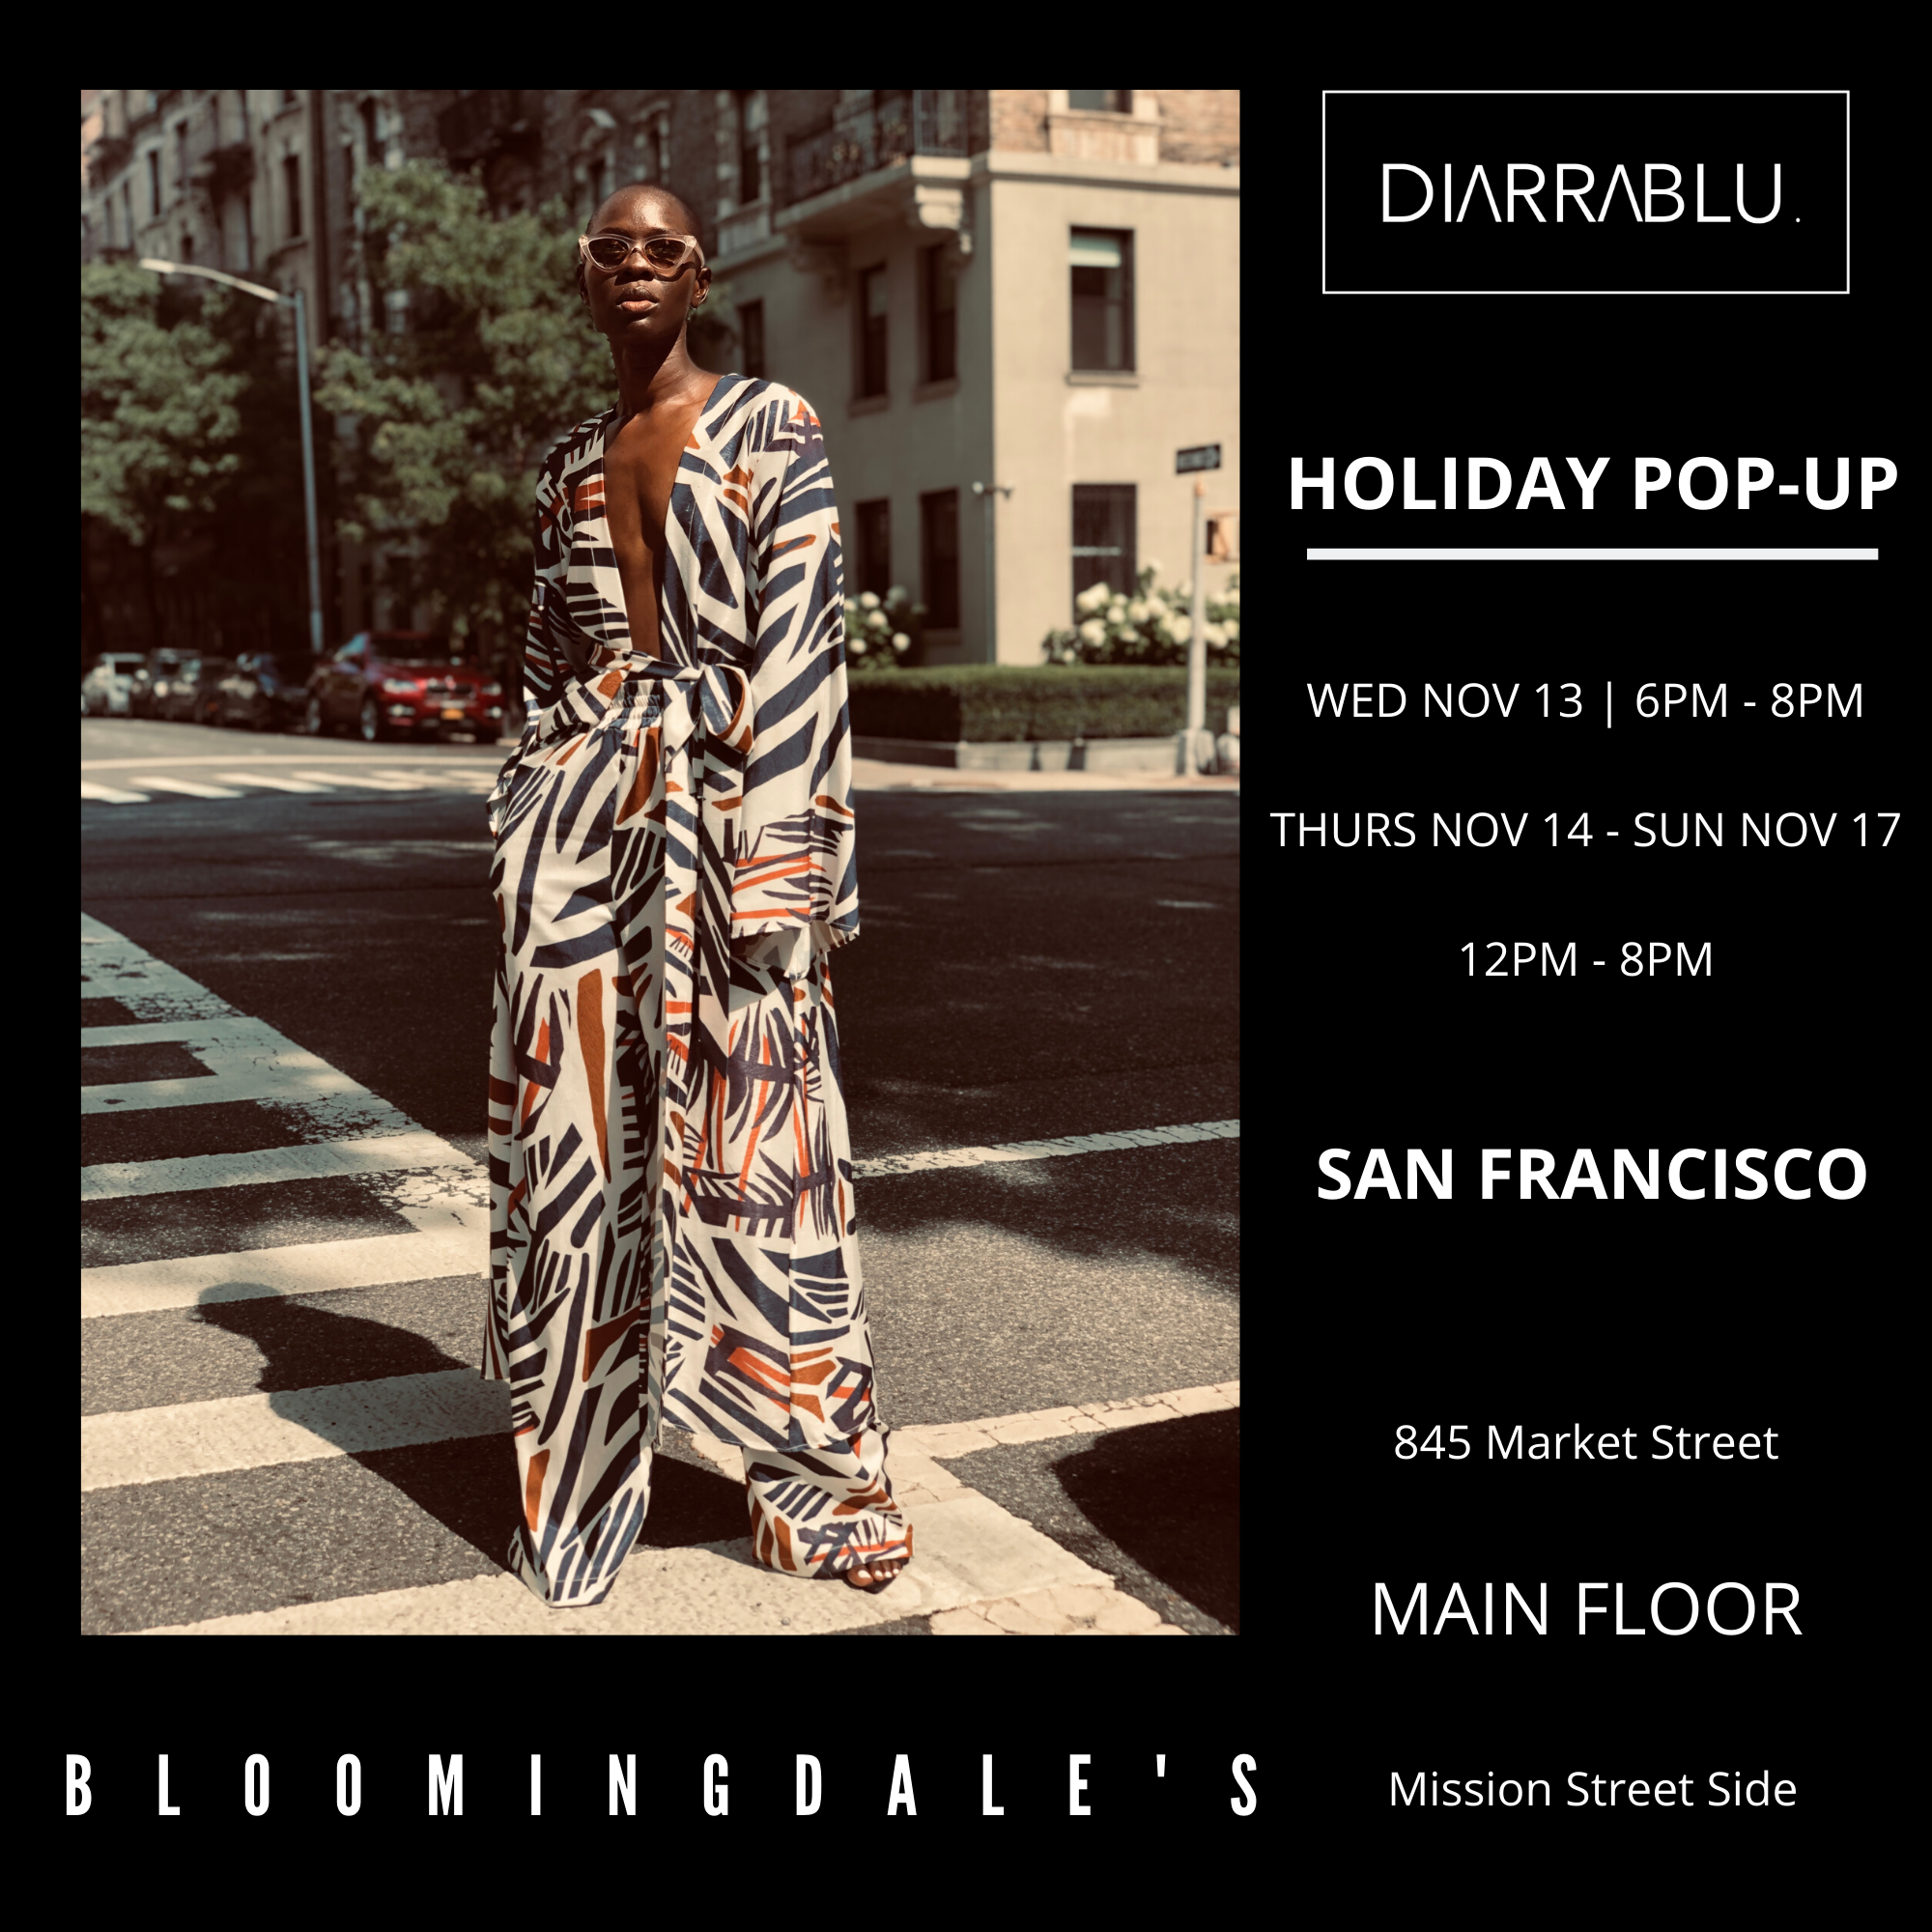 Fisf Designer Pop Up Diarrablu Fashion Incubator San Francisco Supporting Designers In The Business Of Fashion